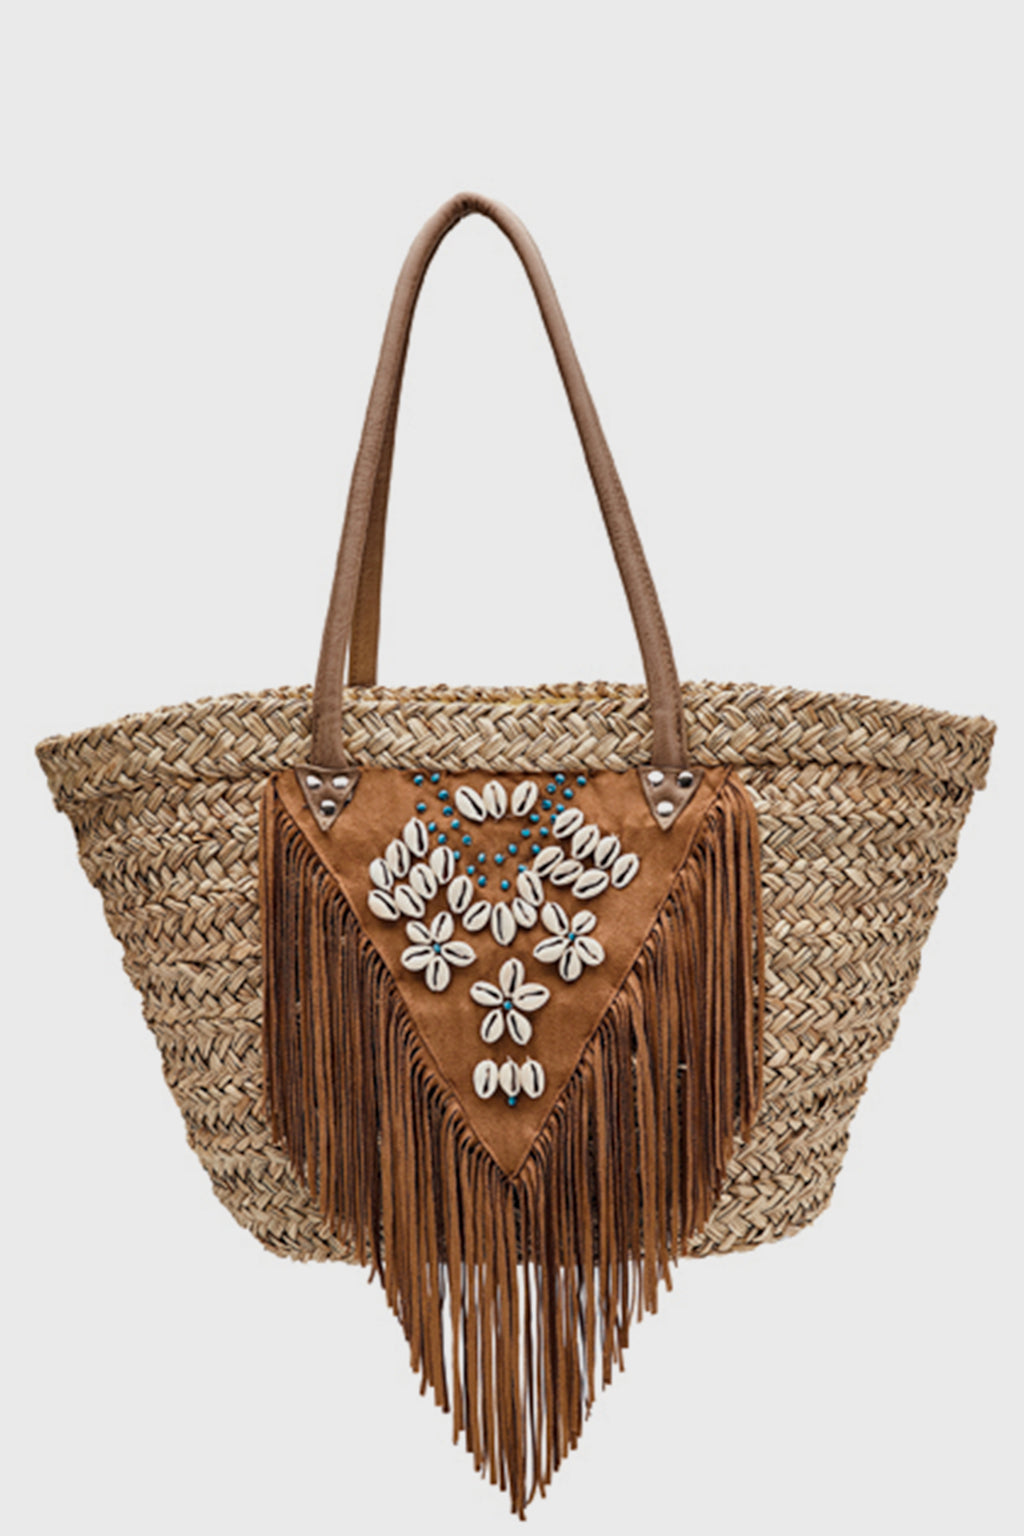 BaySky woven seagrass tote with faux suede fringe and shell and turquoise detail (BSB1727)-TOTE-BaySky